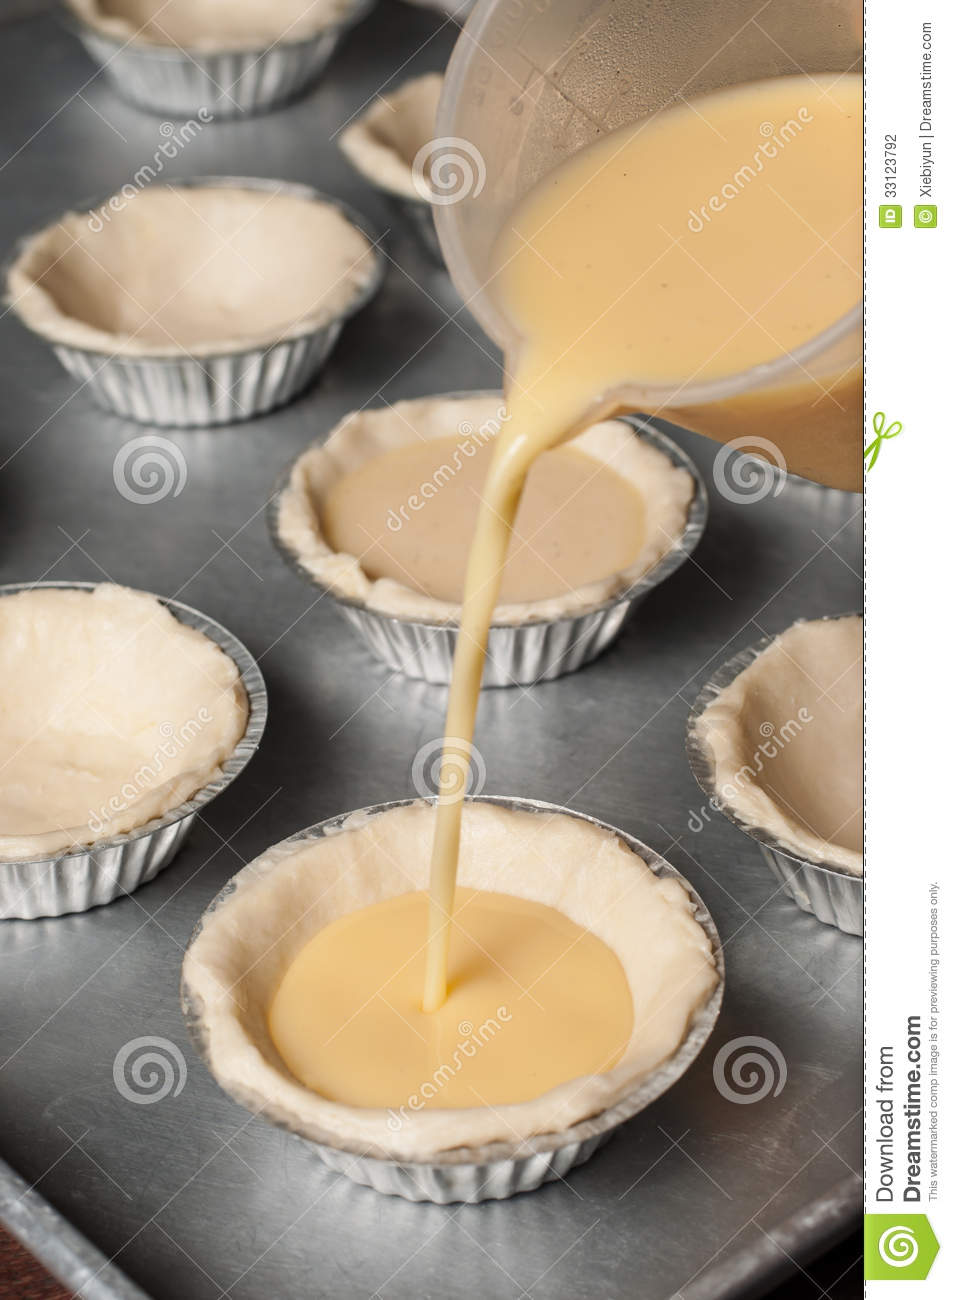 kitchen utensil refacing cabinets cost pour the egg custard mixture into each tart cup. stock ...